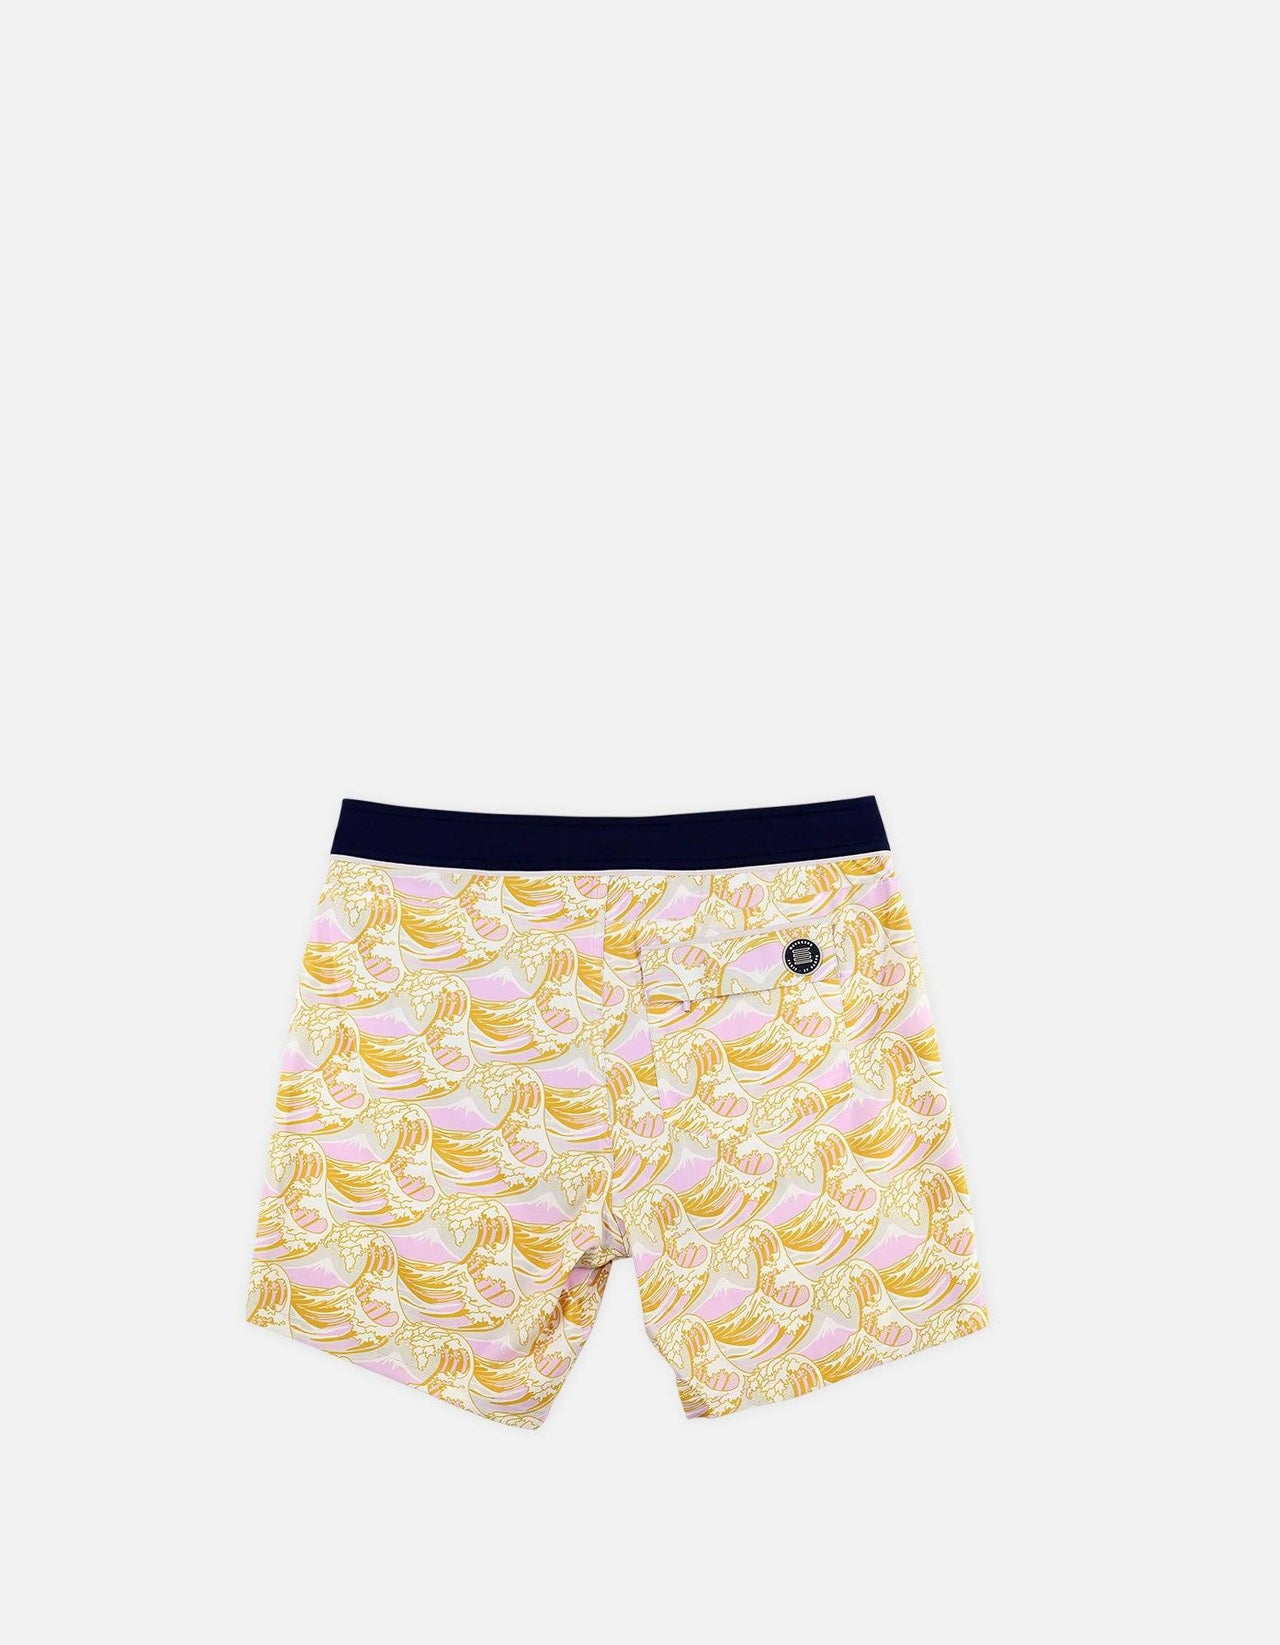 Barth4 - P10. Hokusai 70th & Navy Swim Shorts - Barth4 MACKEENE